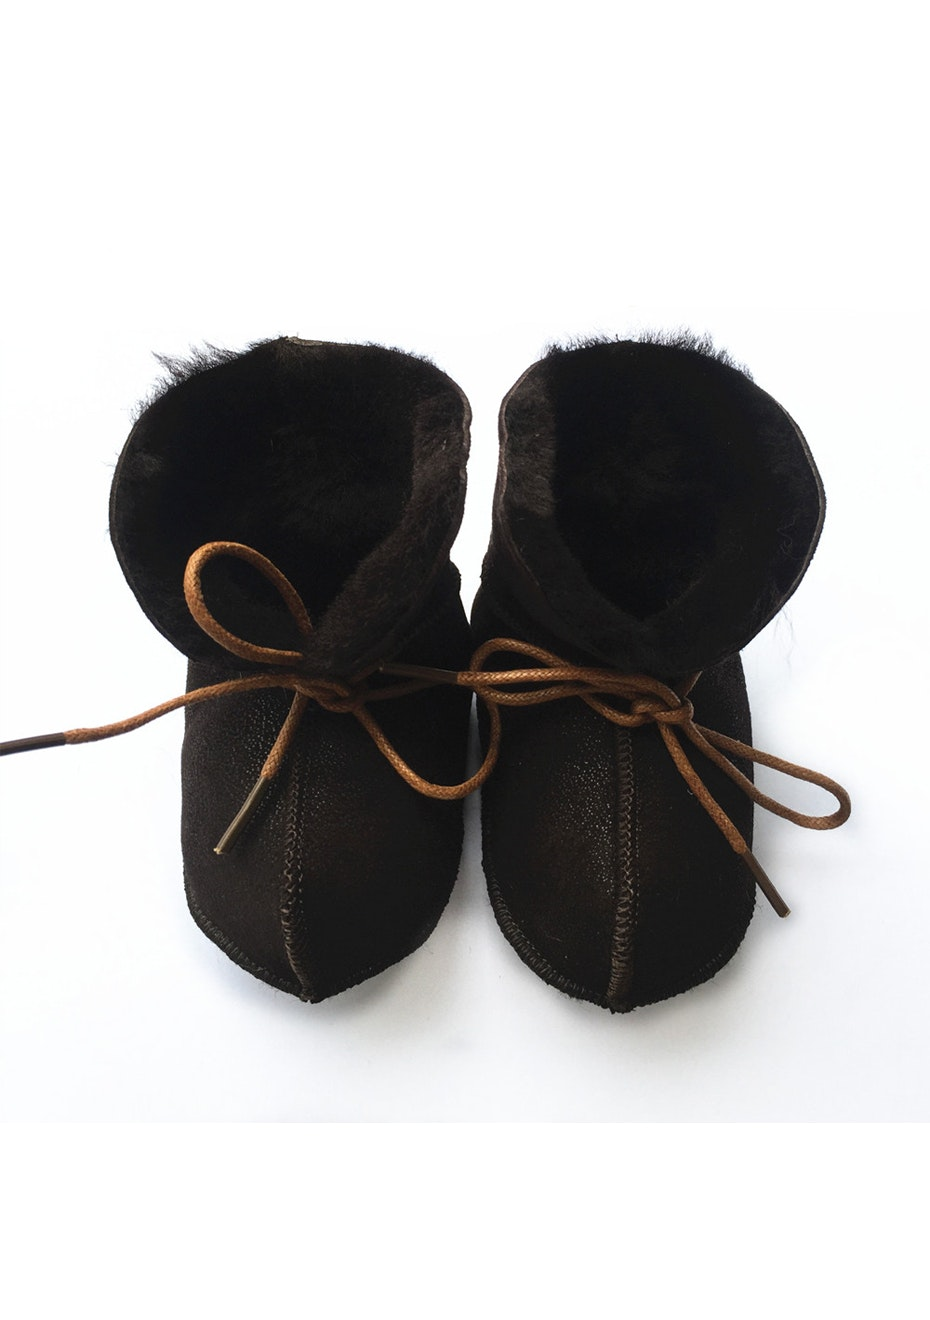 Baby  Leather Shoes - Brown / Black Fur